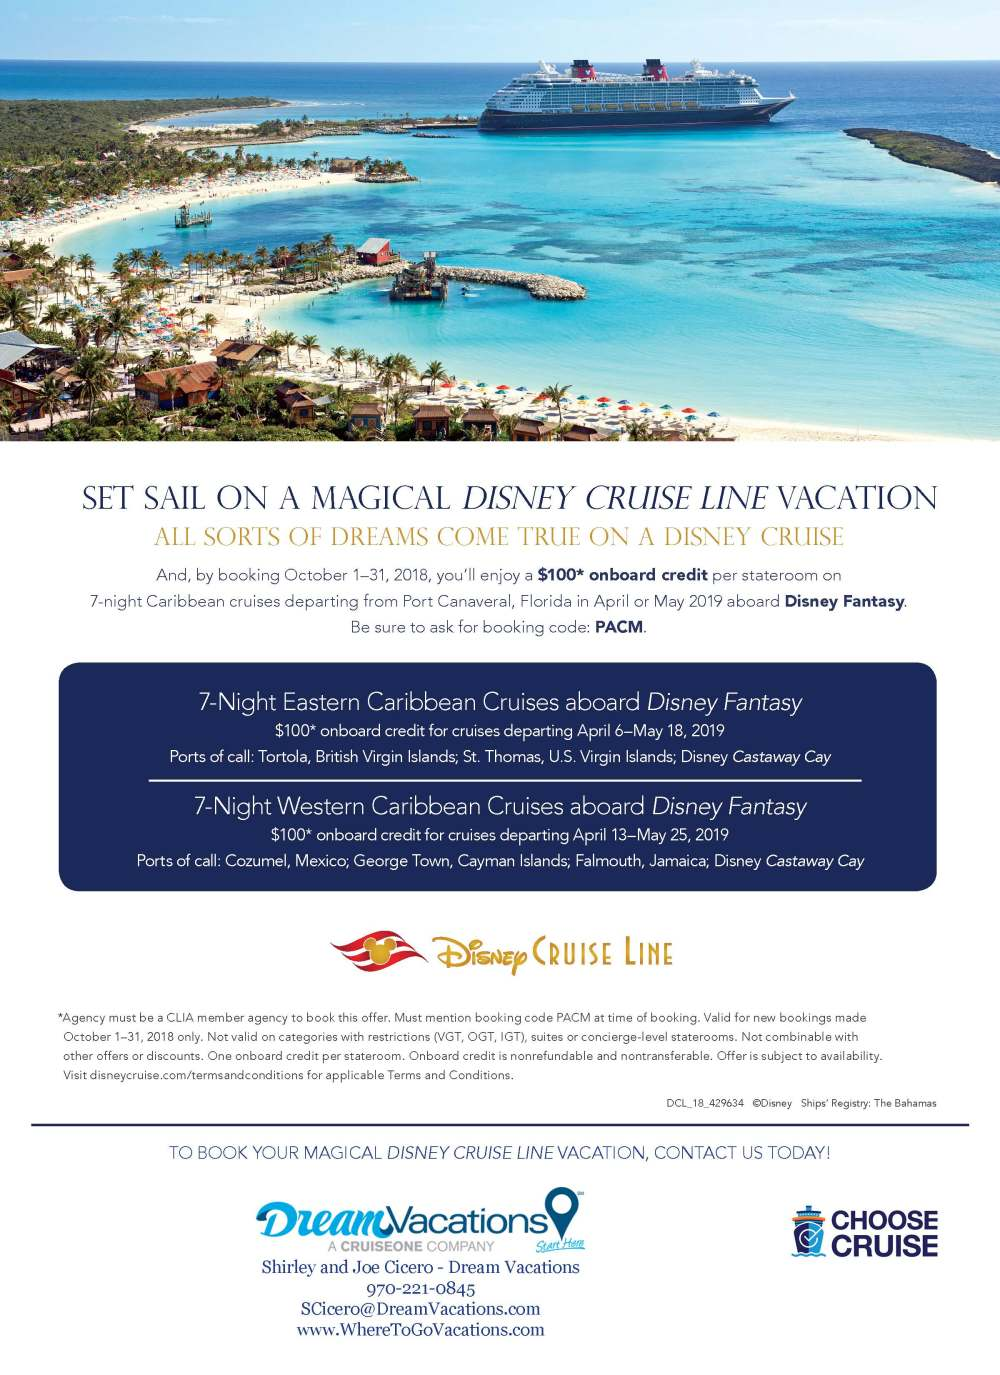 disney-18_429634-trade-clia-choosecruise-flyer-final-editable